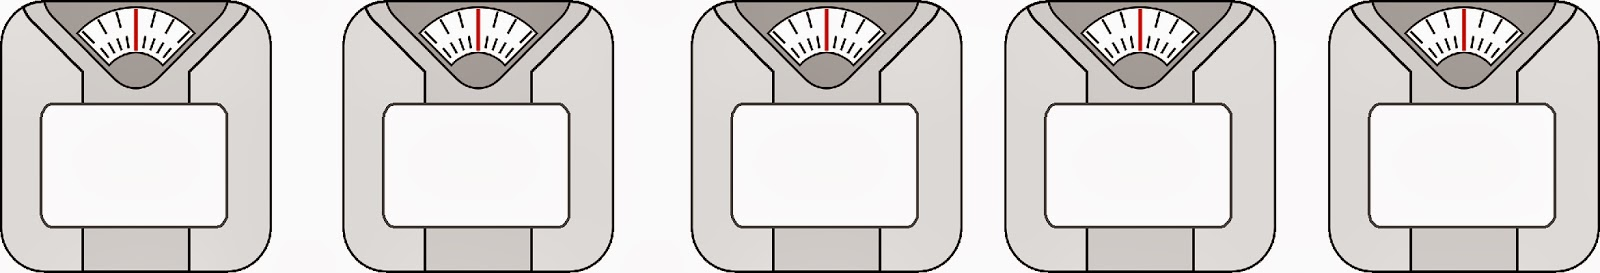 Scale Weight Loss Stickers to Print at Home